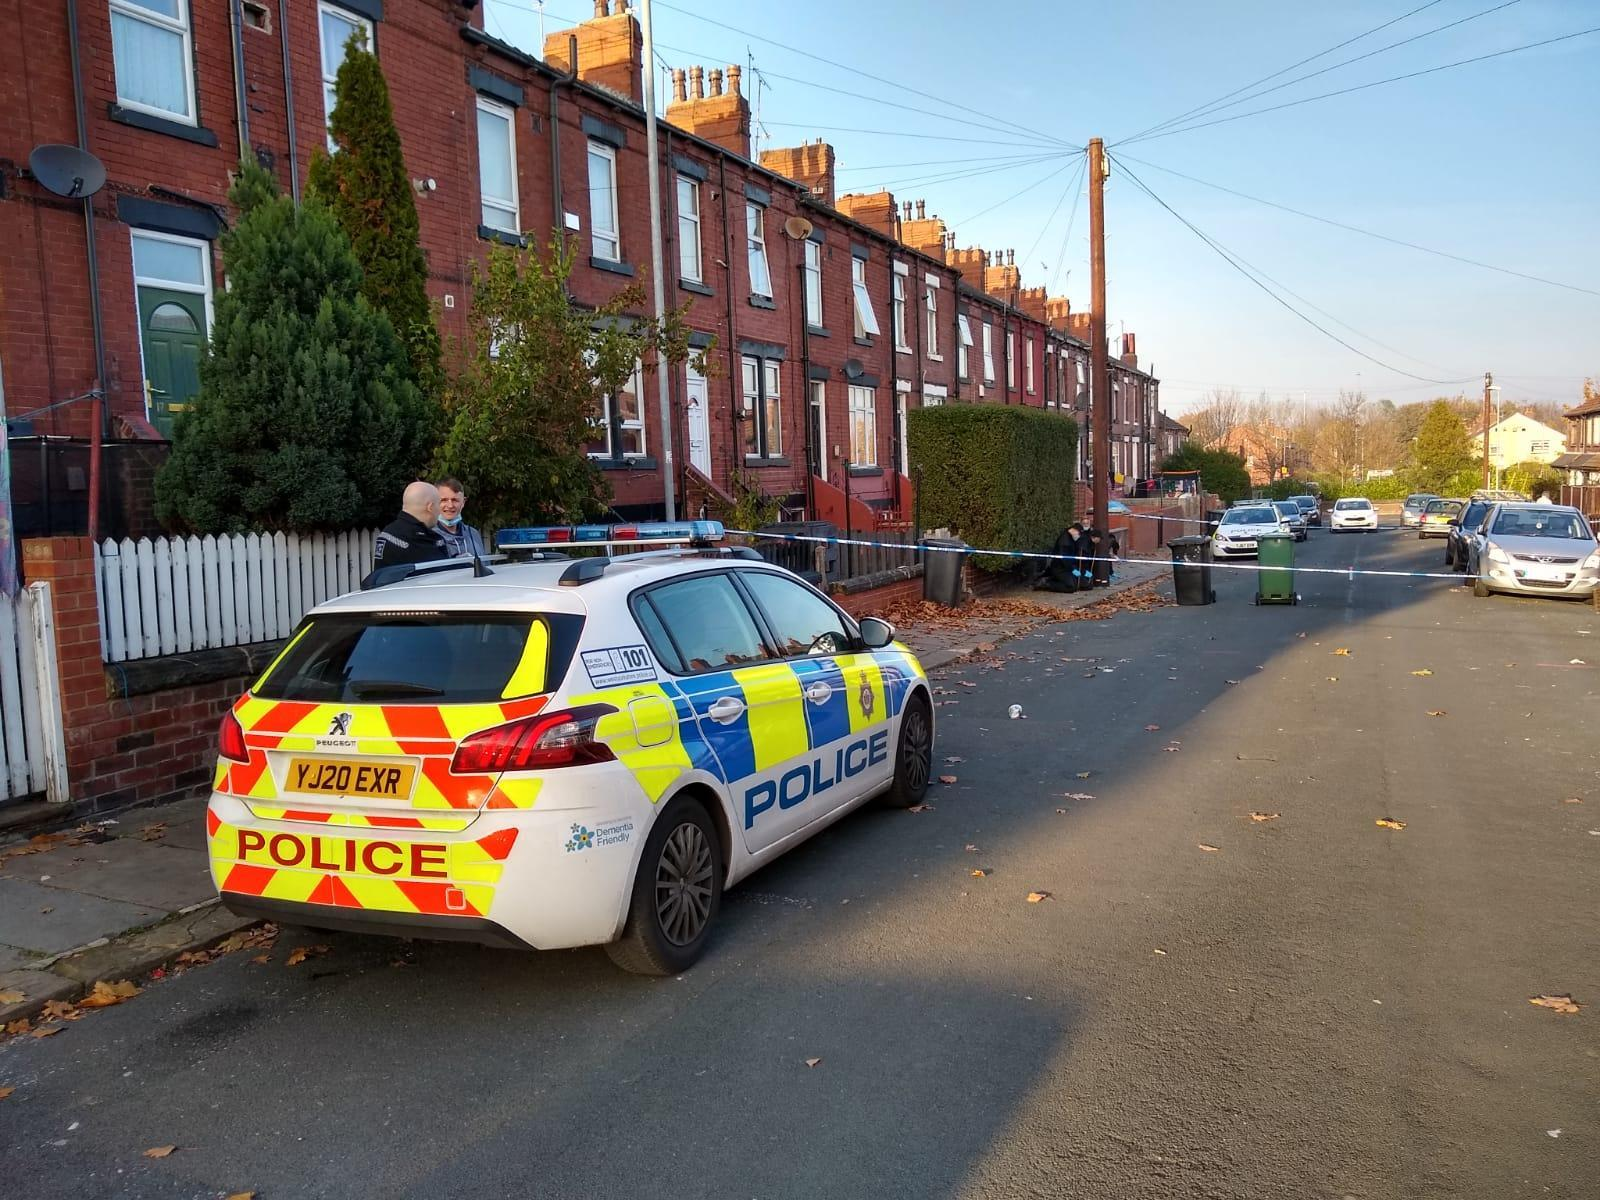 Two people charged over gunshot in Beeston after police search tents in Leeds city centre